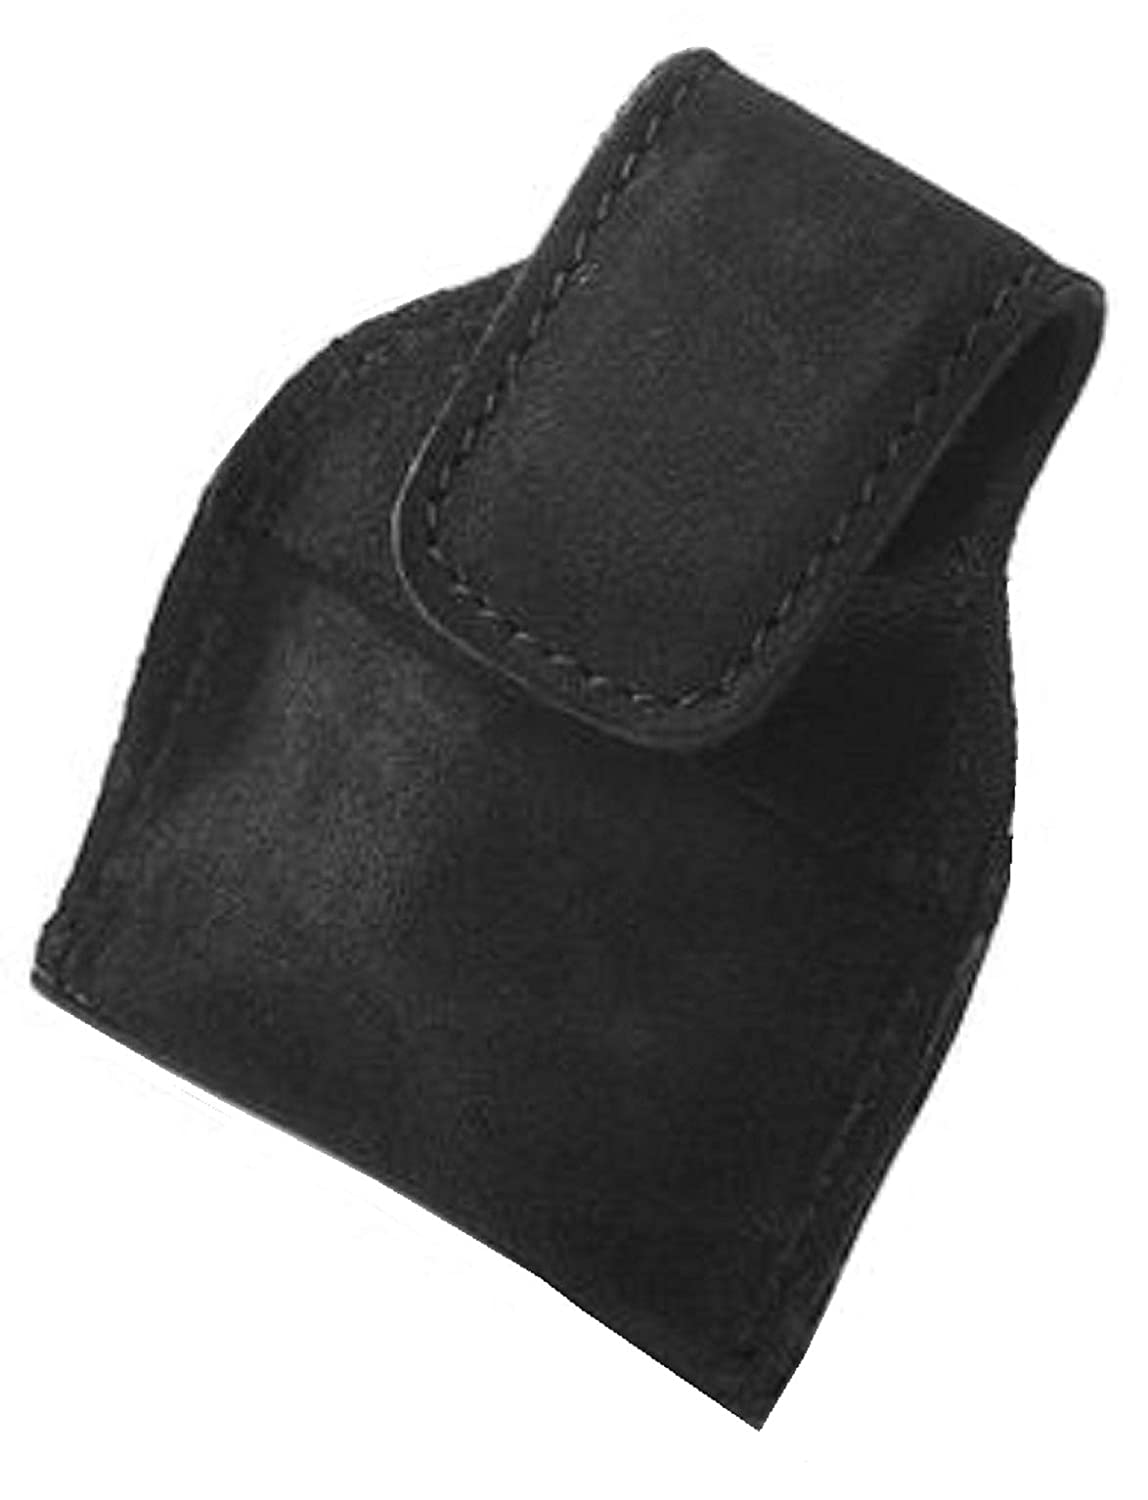 Peradon leather snooker chalk pouch